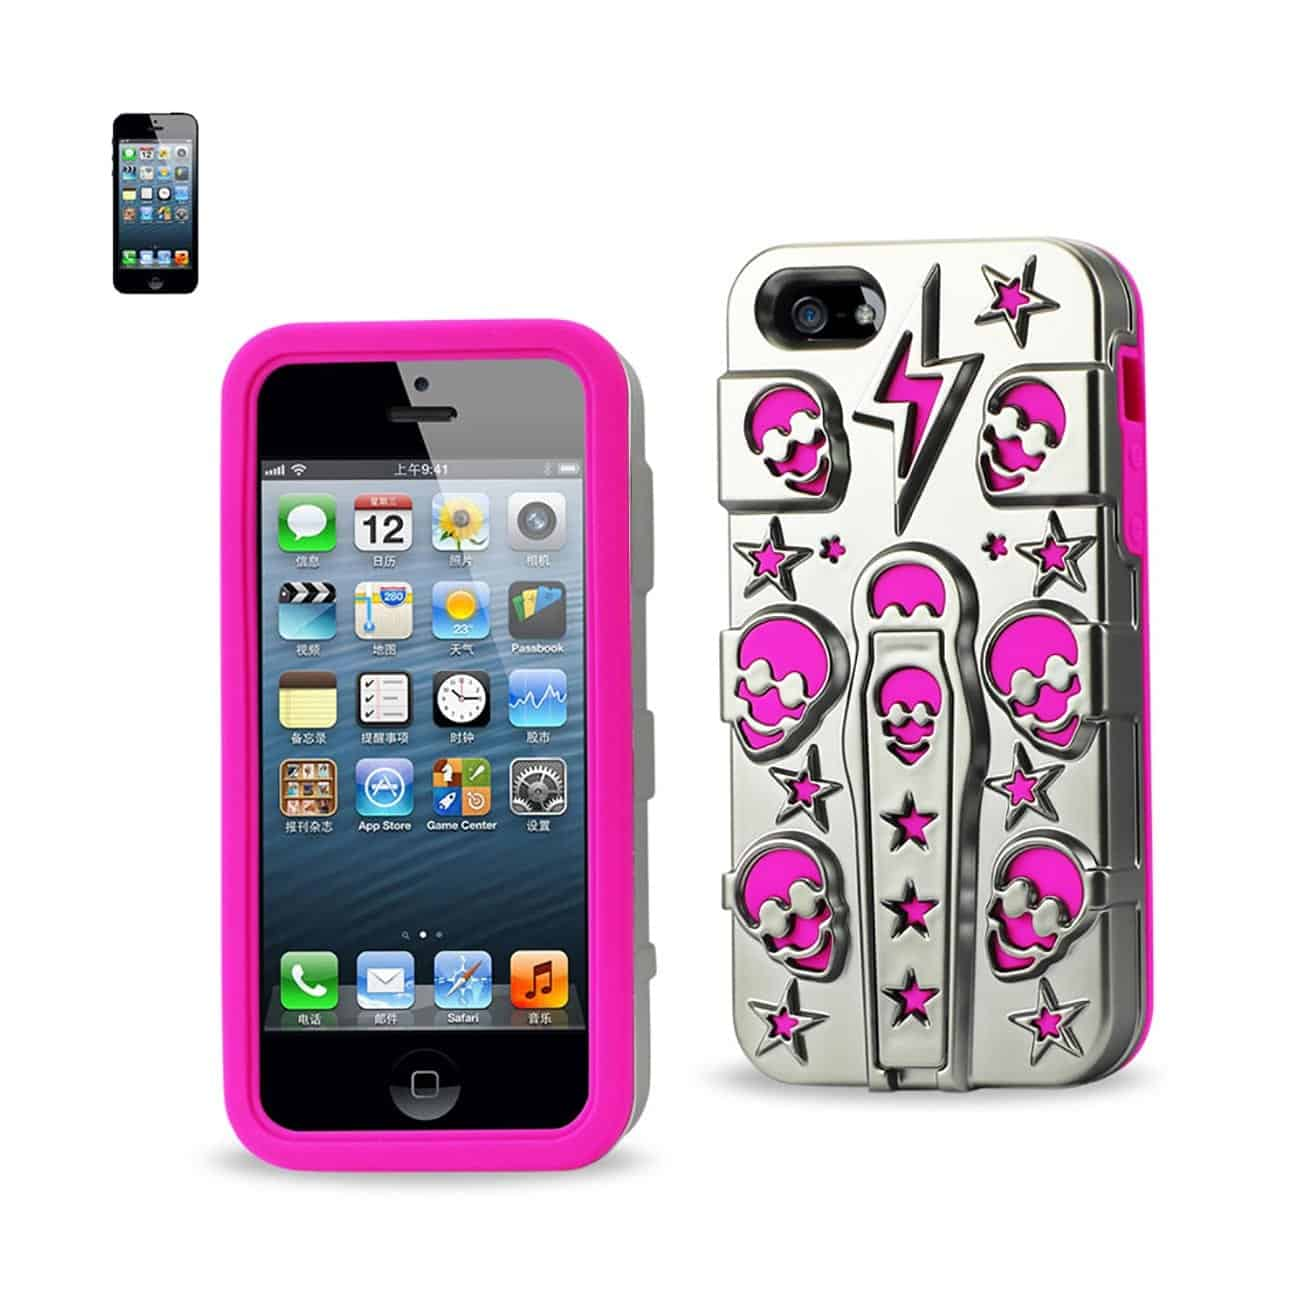 IPHONE SE/ 5S/ 5 HYBRID SKULLS CASE WITH KICKSTAND IN HOT PINK